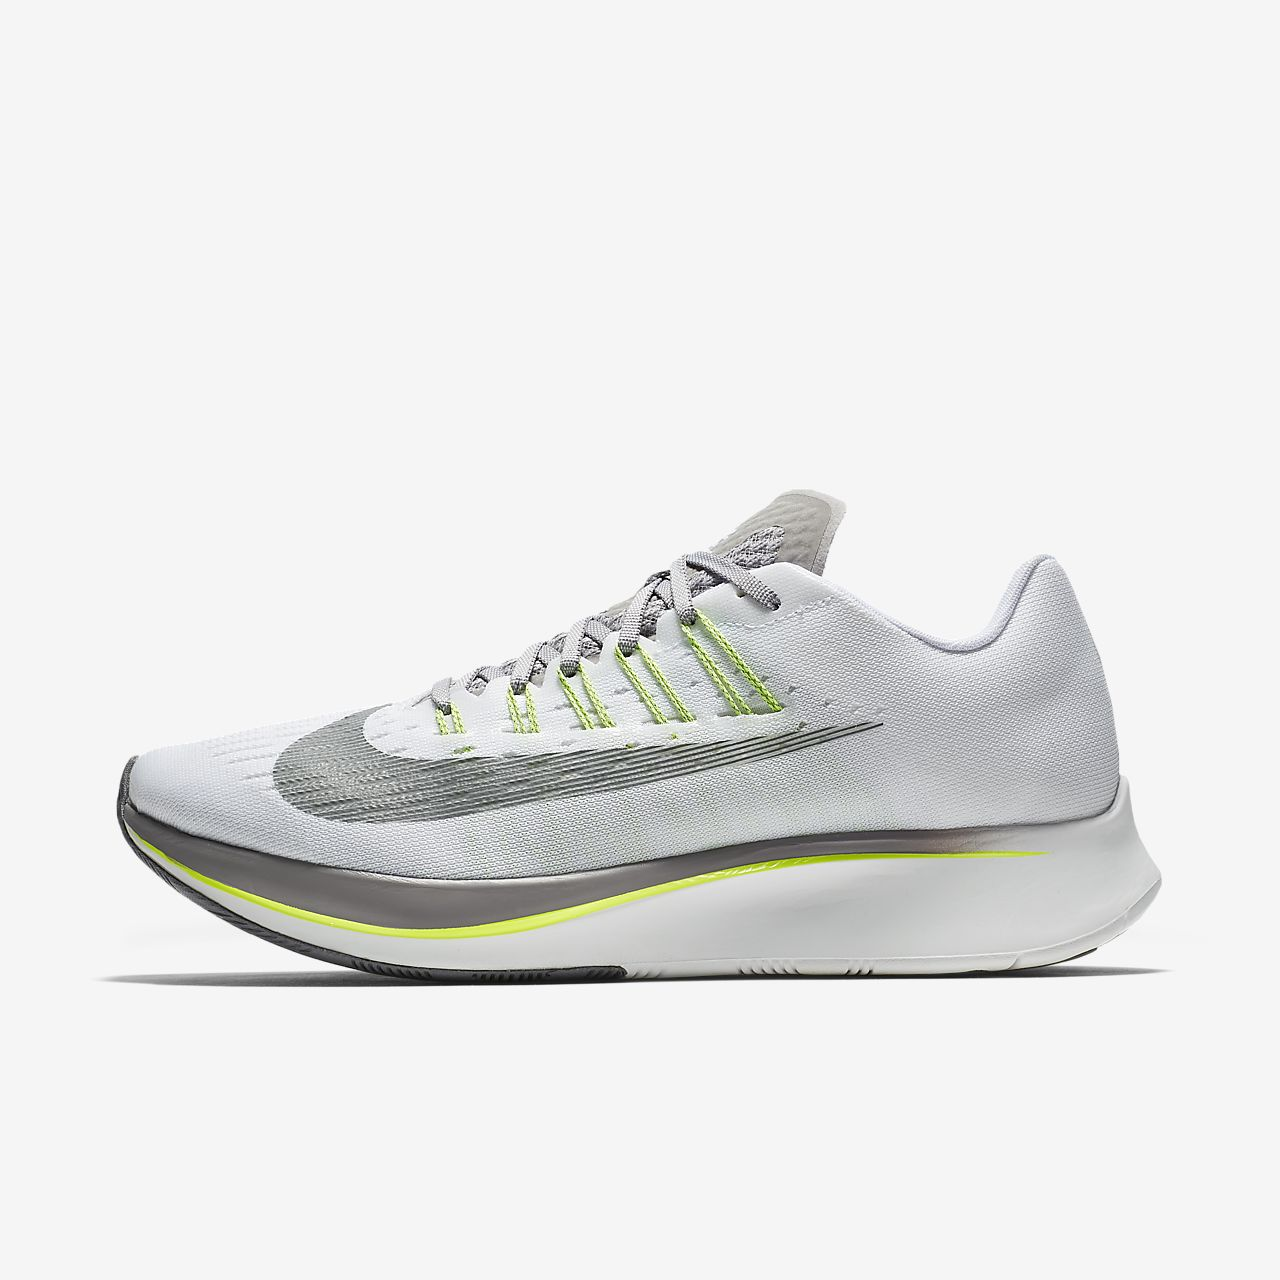 c5399bf4603997 Nike Zoom Fly Men s Running Shoe. Nike.com